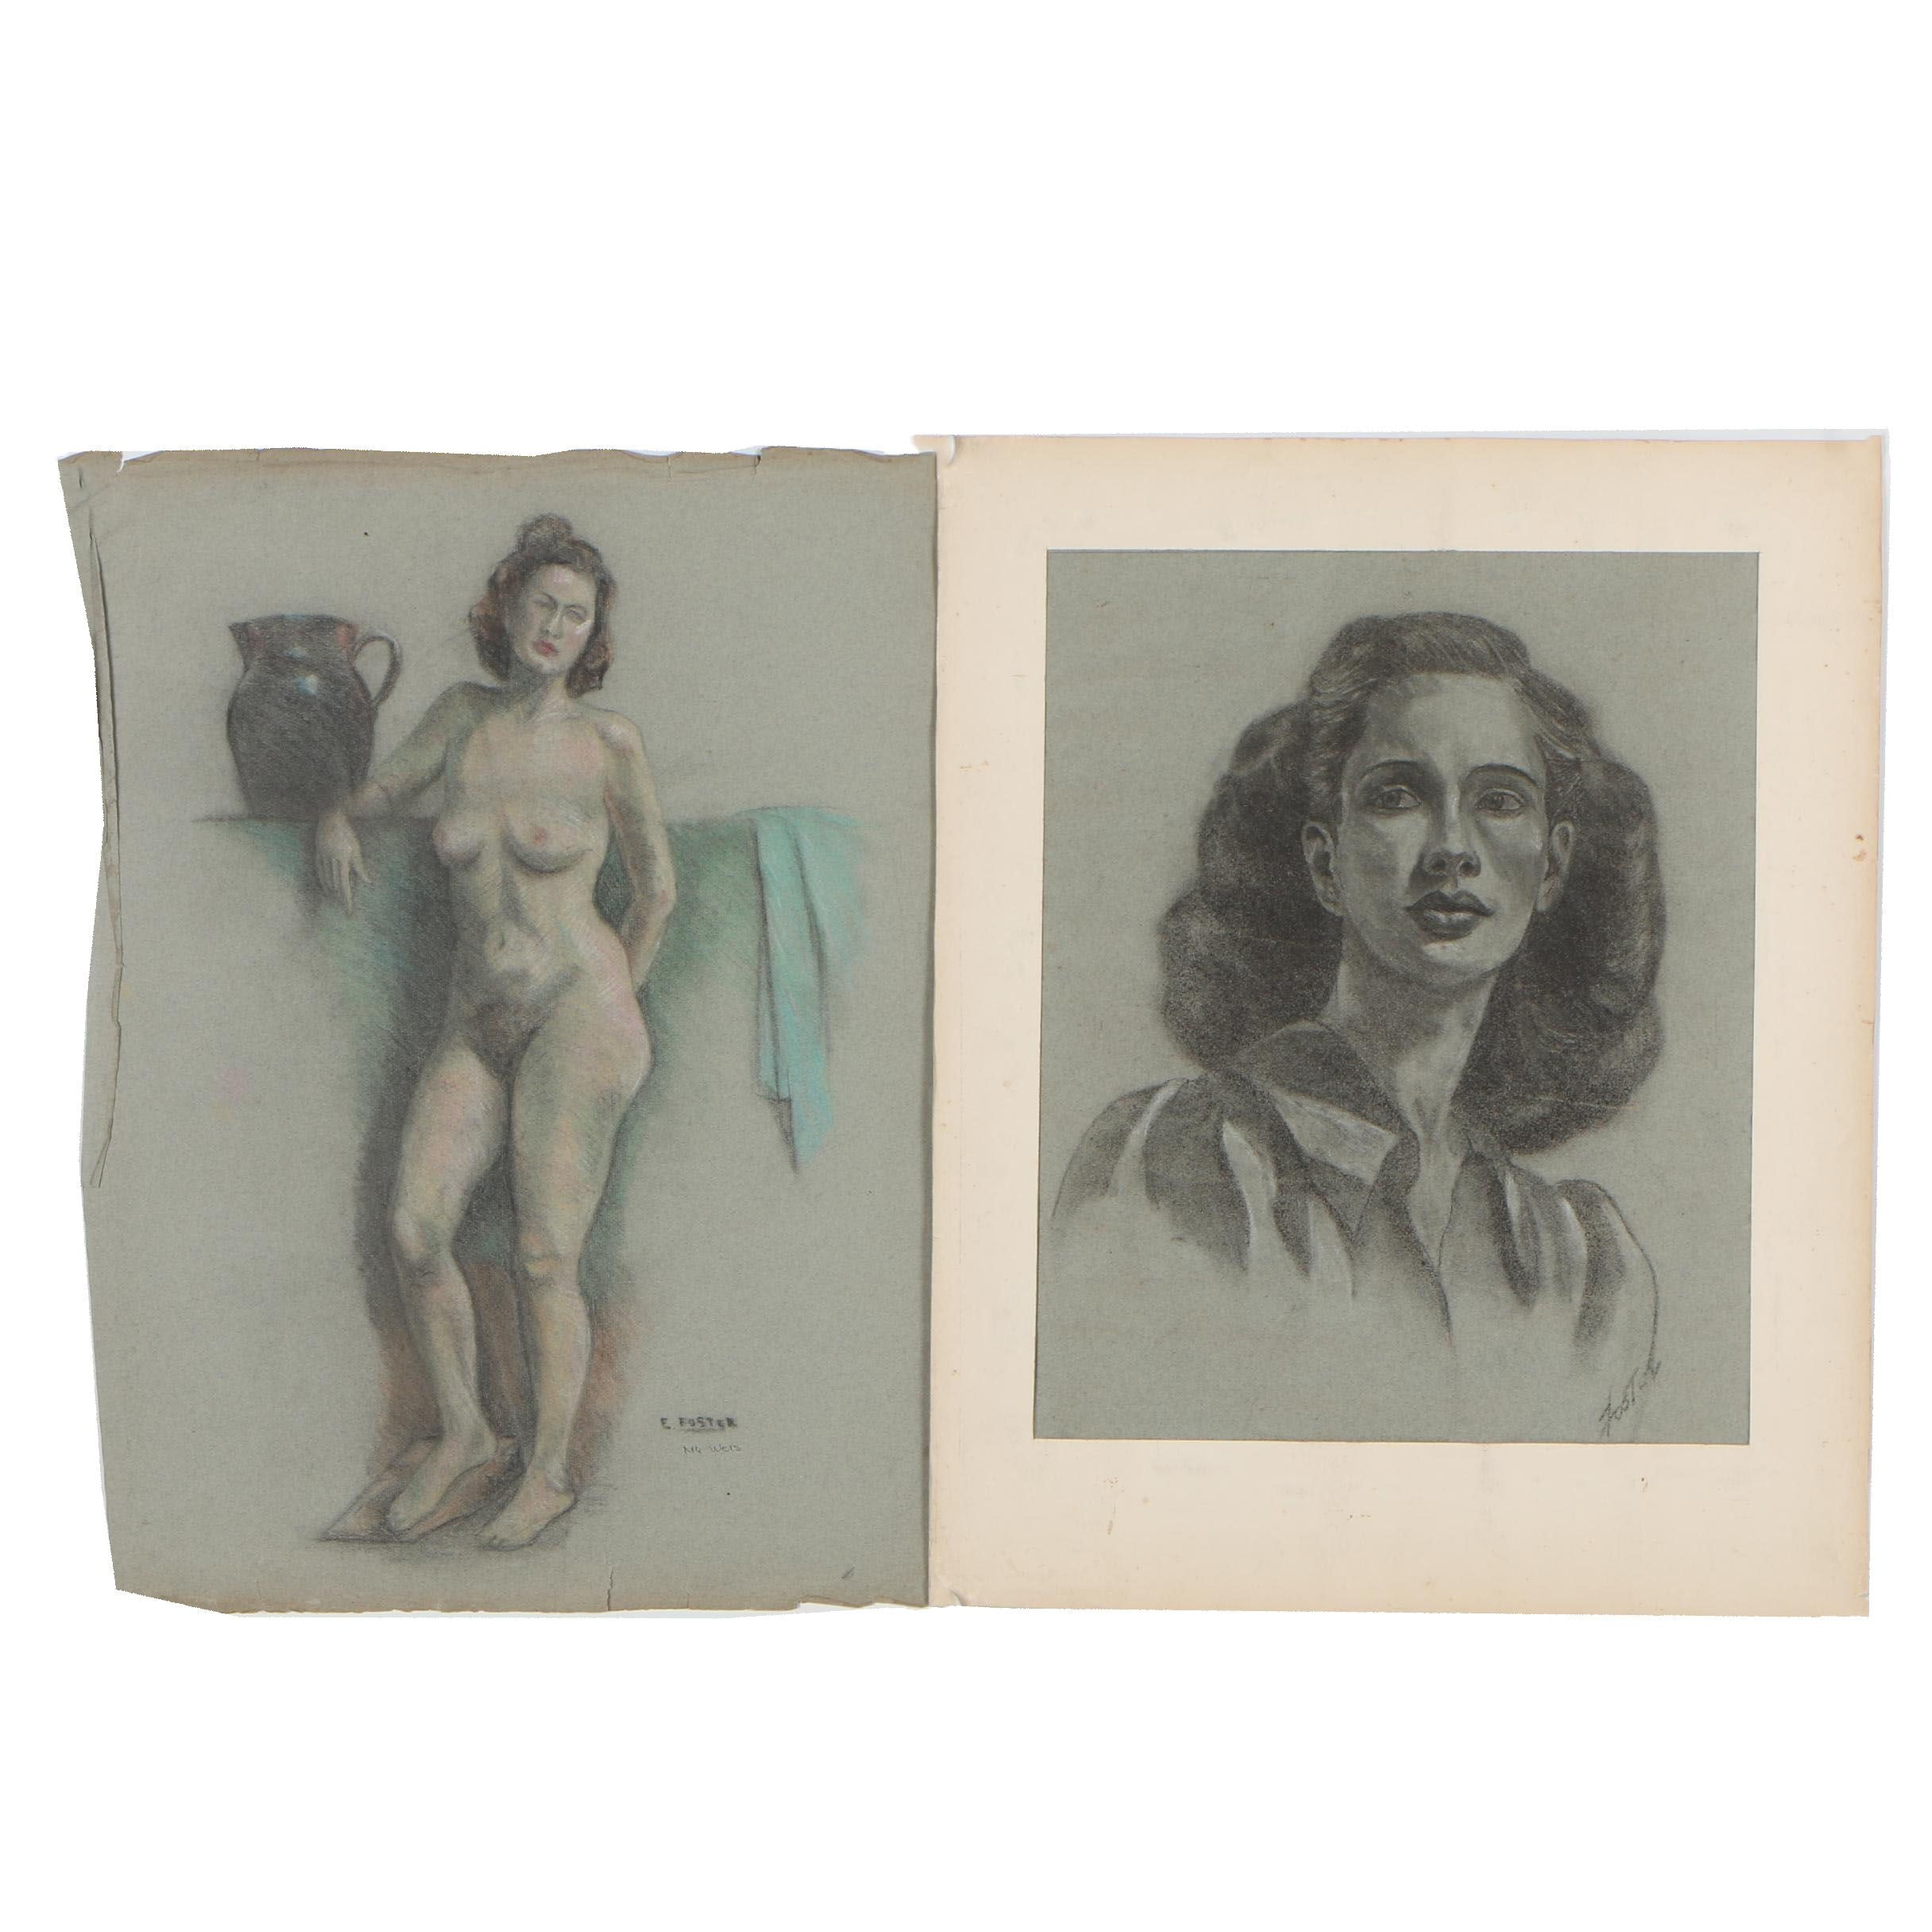 Edythe Foster Charcoal and Colored Pencil Drawings of Female Portraits